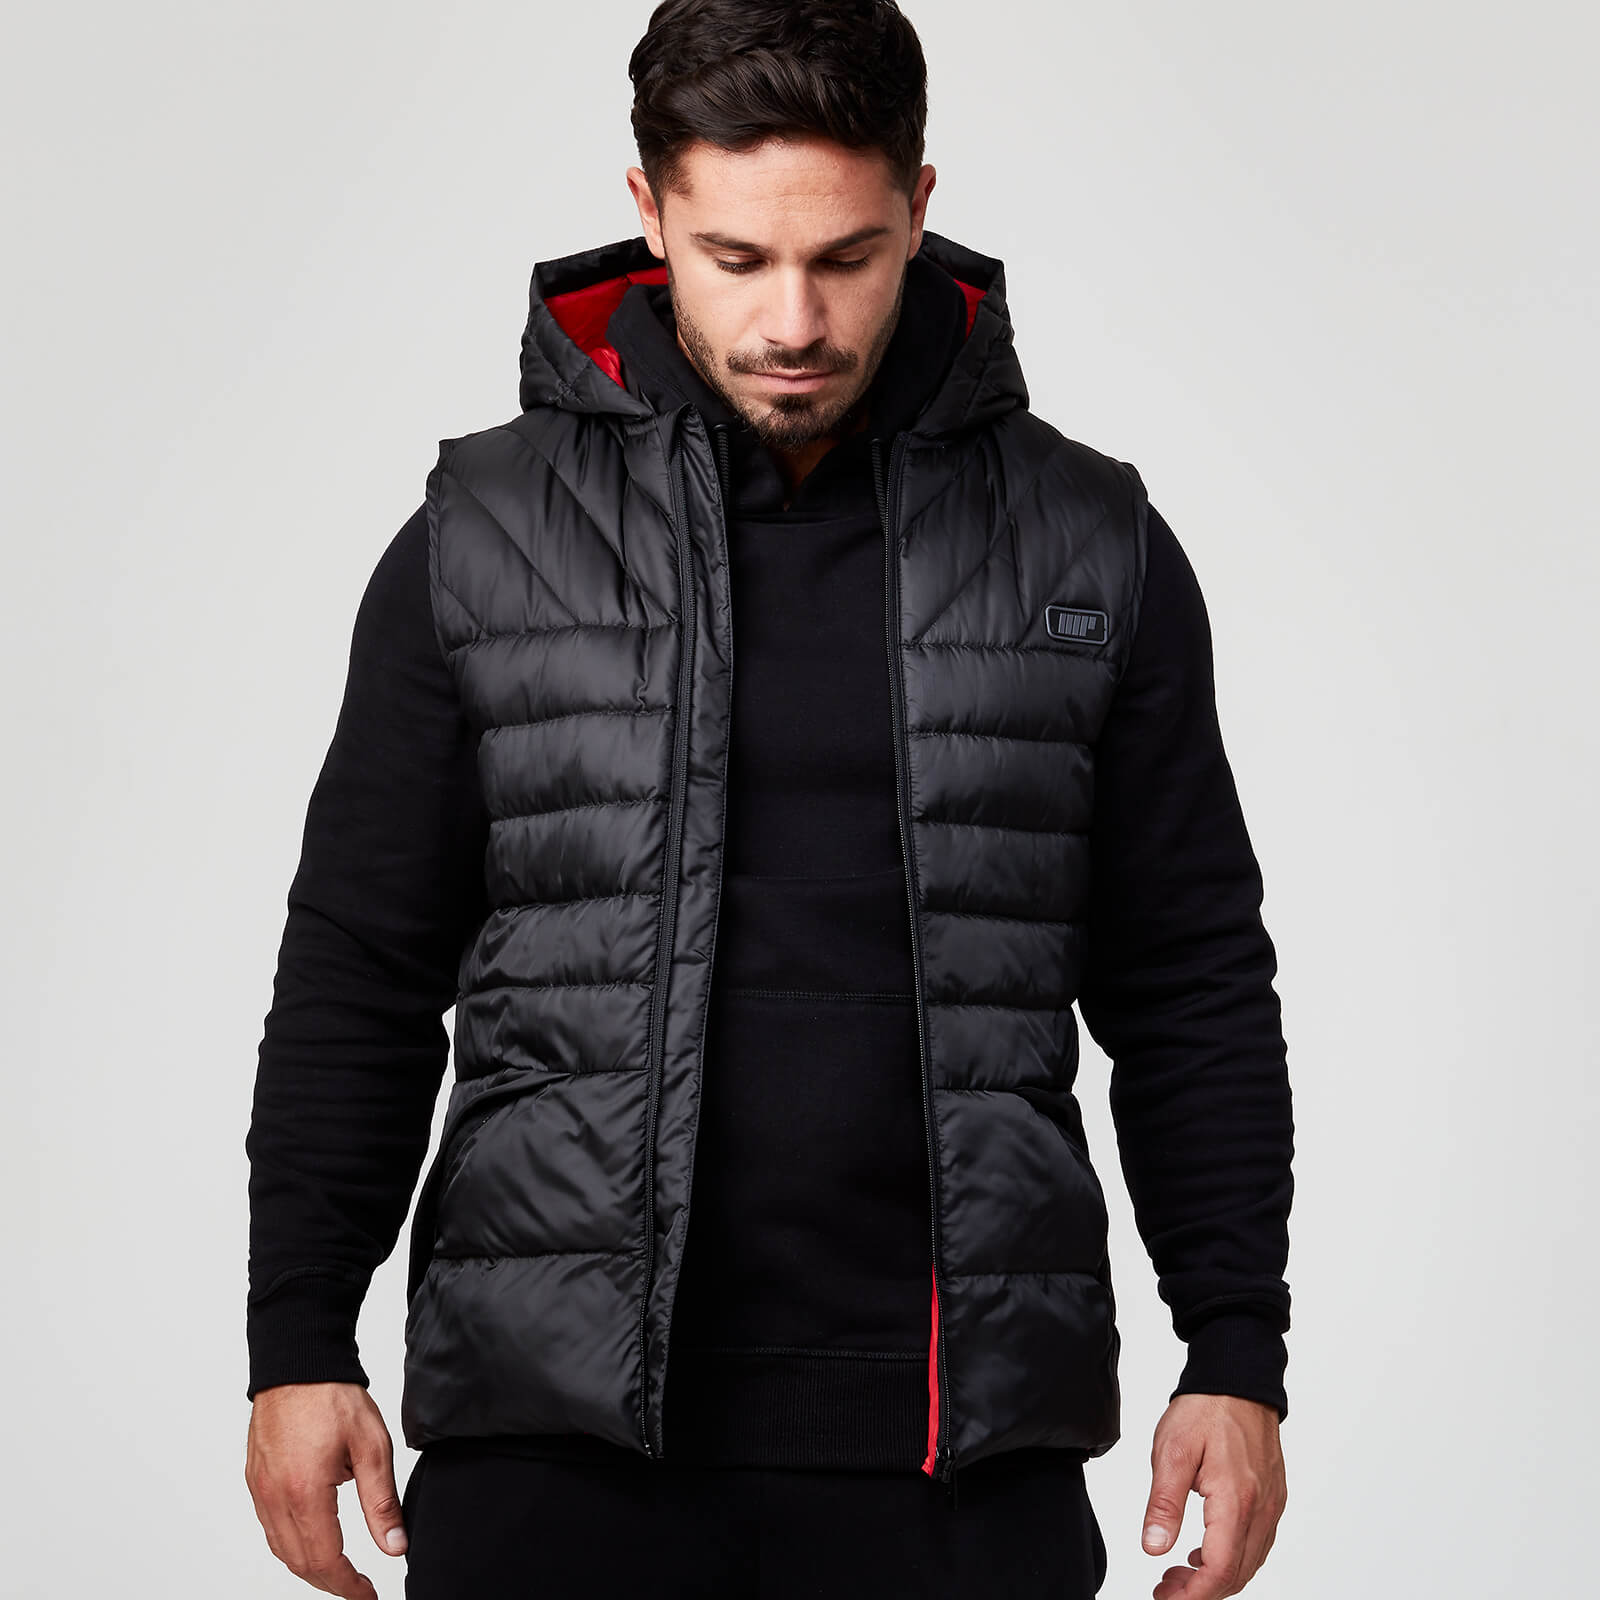 Pro Tech Heavyweight Gilet - Black - S